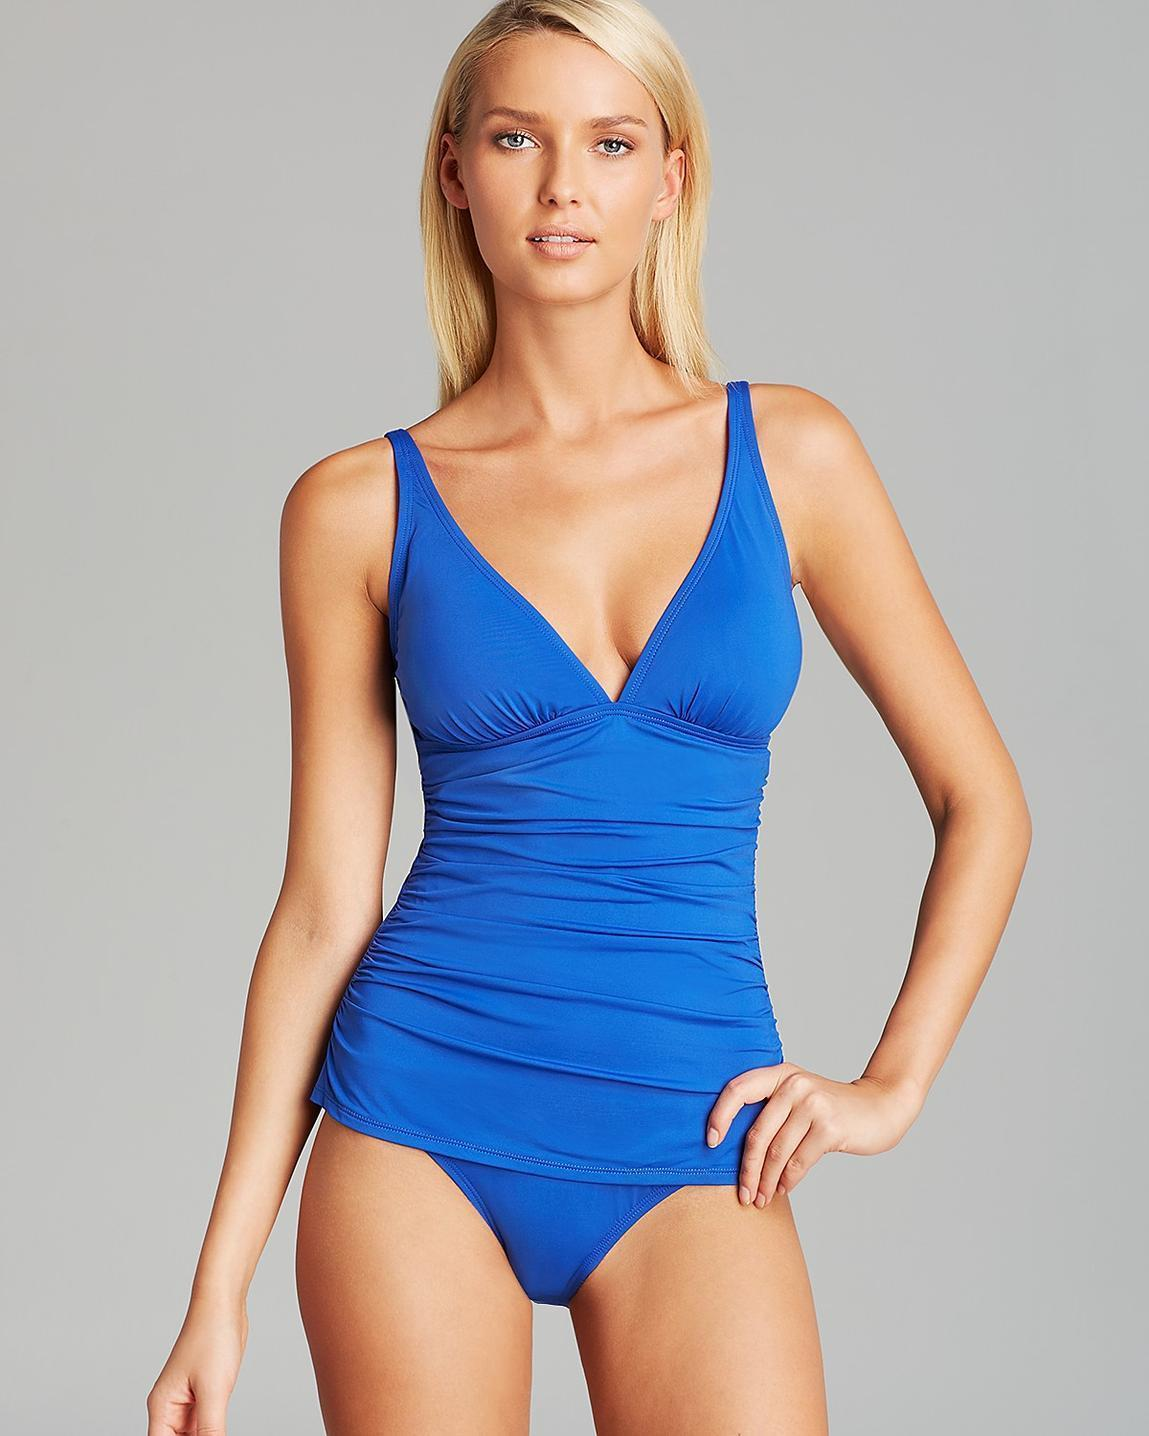 8cd00411abc NEW Tommy Bahama Pearl Solids V Neck One Piece Swimsuit size 4 Royal Blue  $130 - $63.35